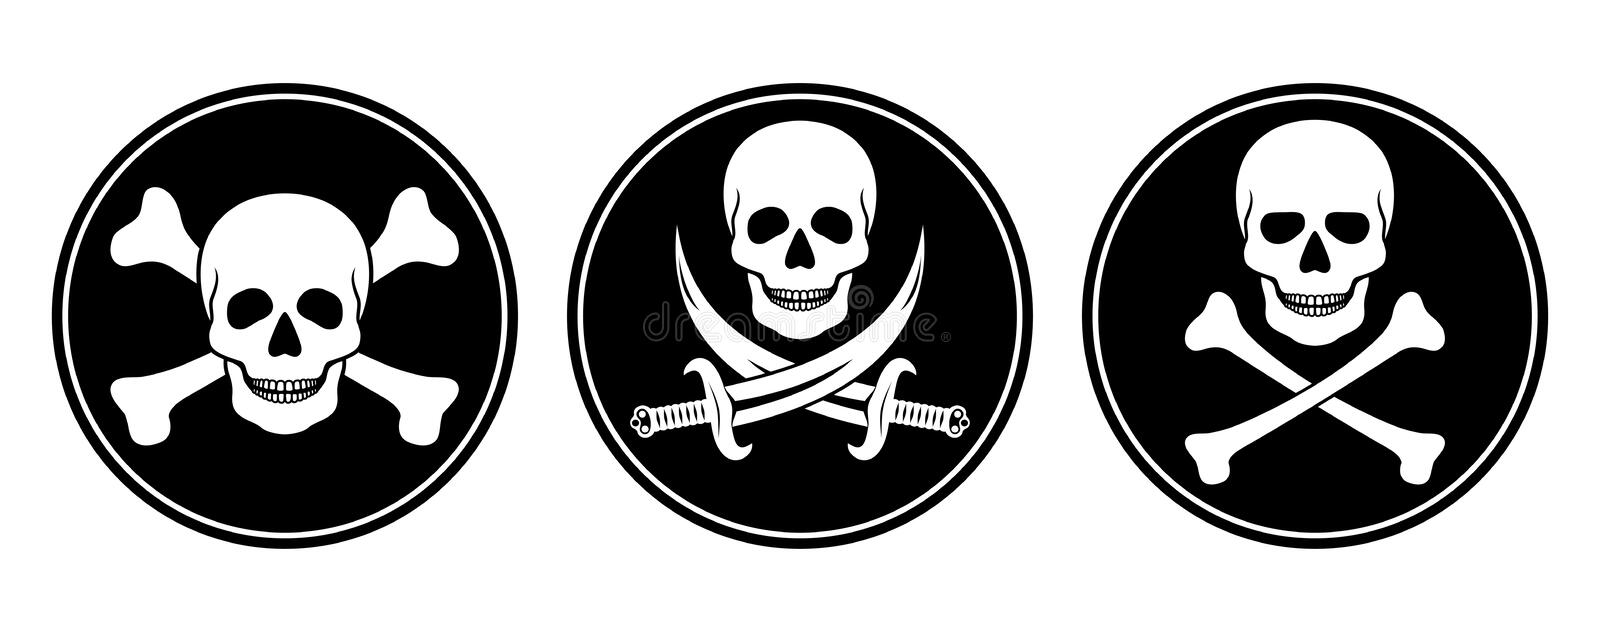 Download Skull And Crossbones, And Skull With Swords In Vector Stock Vector - Illustration: 29387403